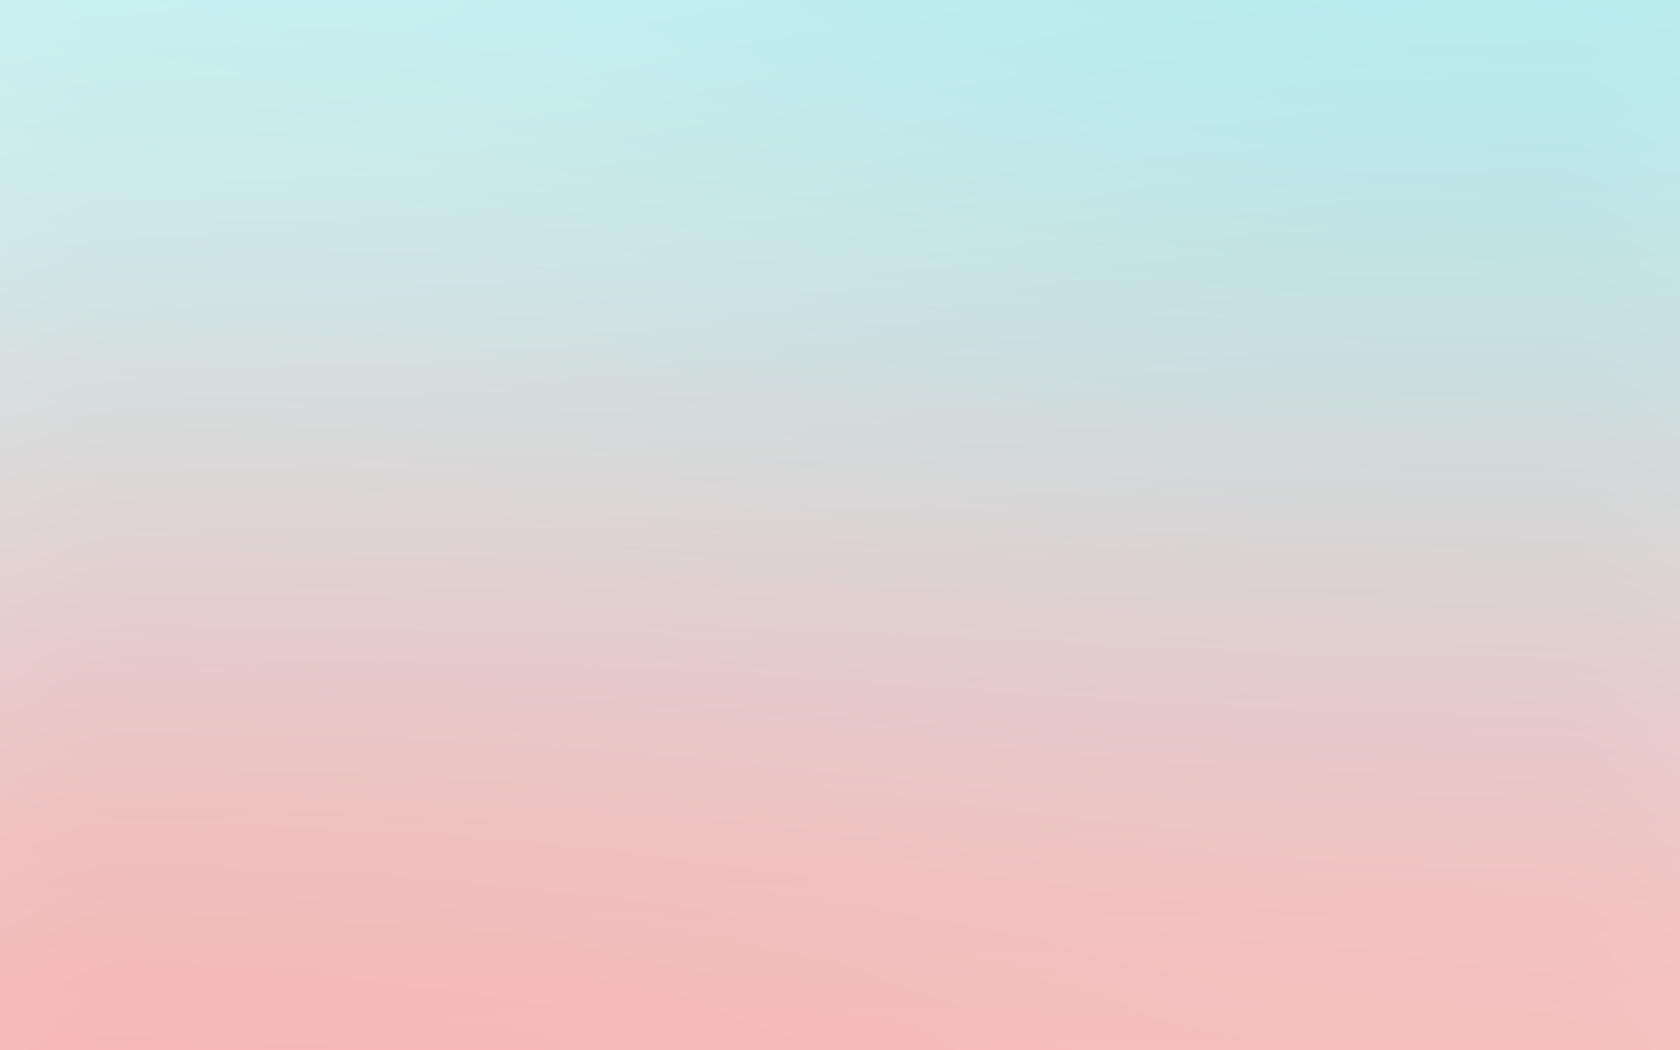 Iphone Wallpaper Cloud Sm40 Blue Red Soft Pastel Blur Gradation Wallpaper